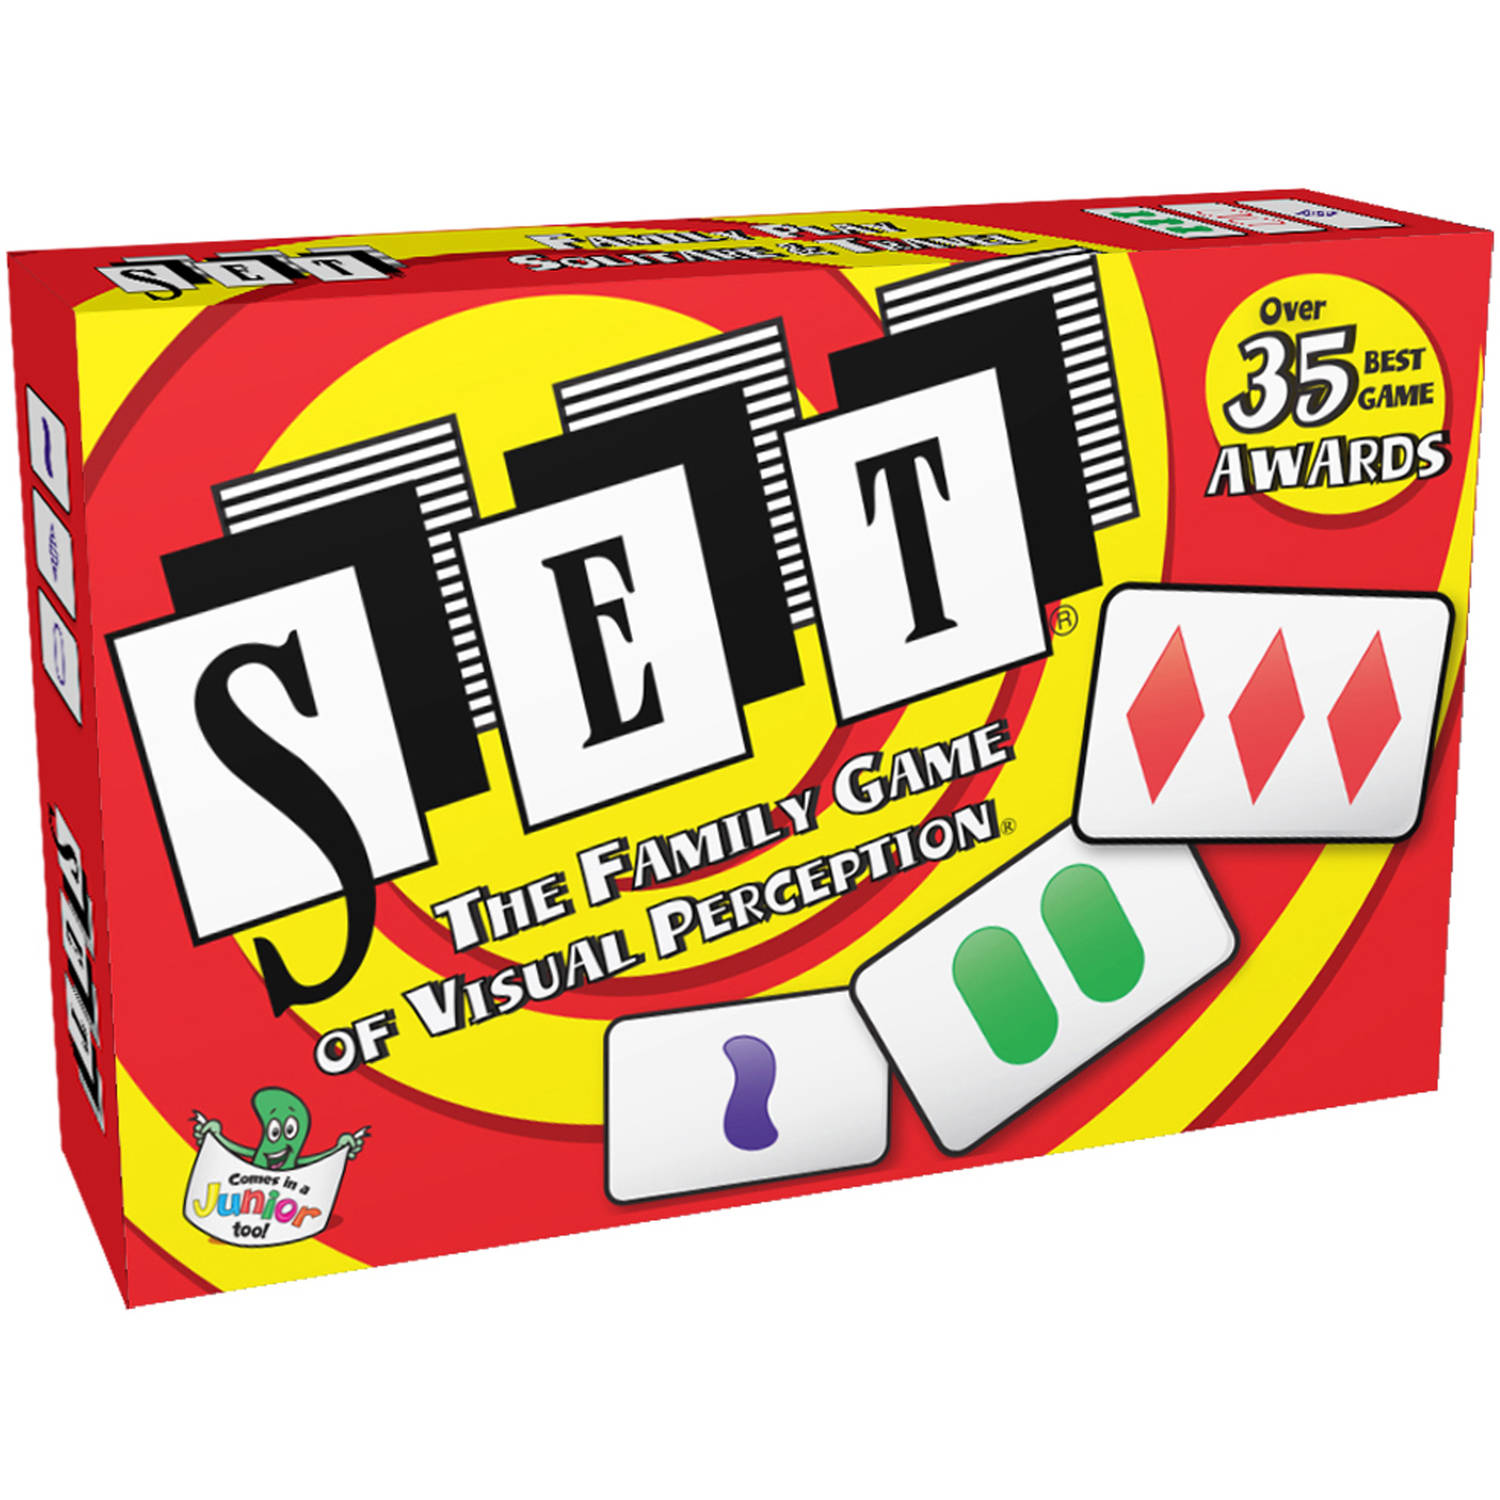 SET Card Game: The Family Game of Visual Perception